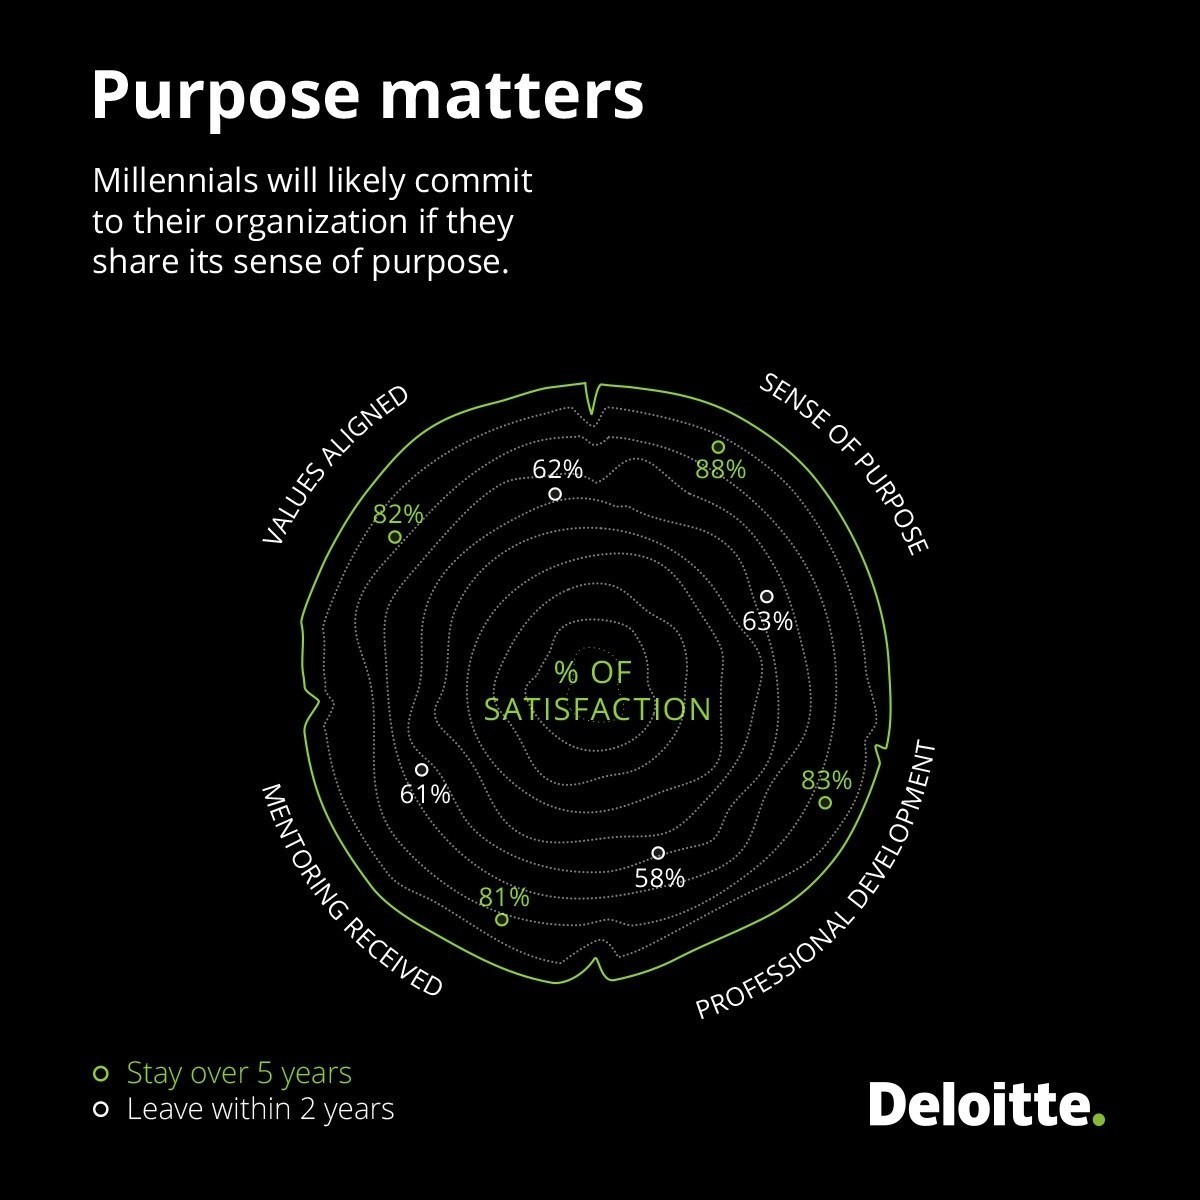 Purpose matters: Millenials will likely commit to their organization if they share its sense of purpose.